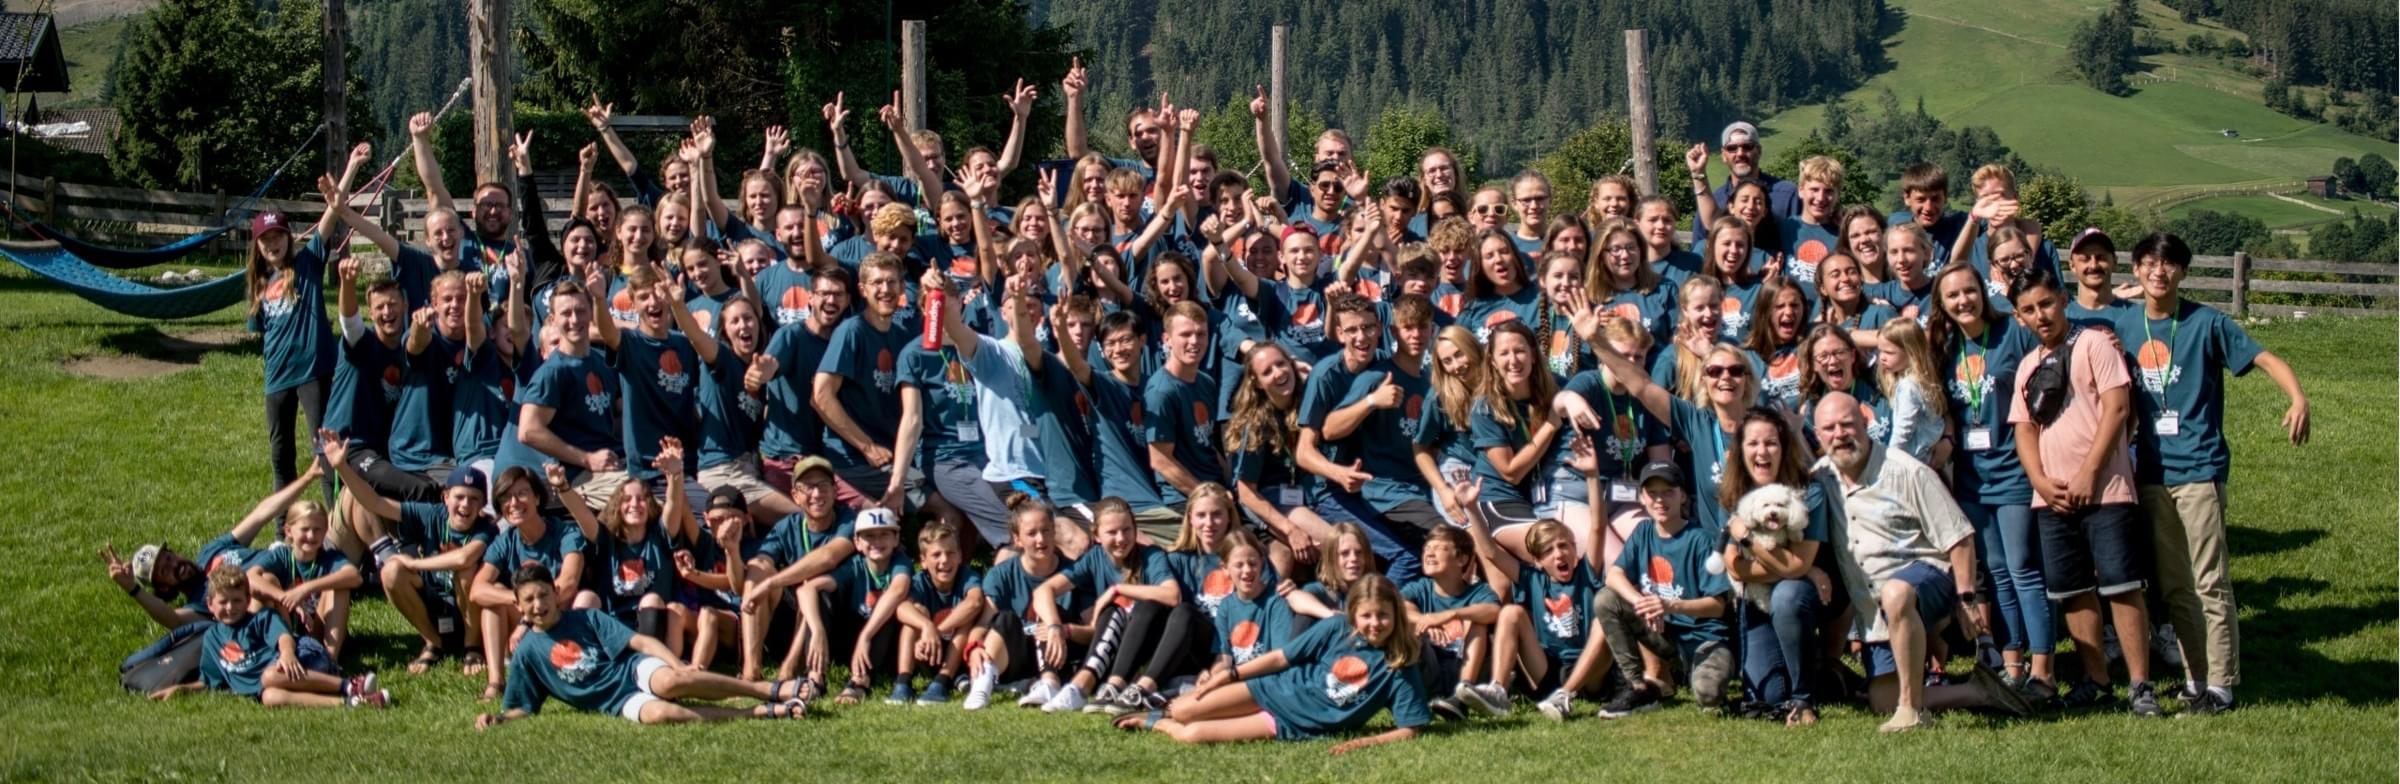 Young Life Sommercamp in Österreich